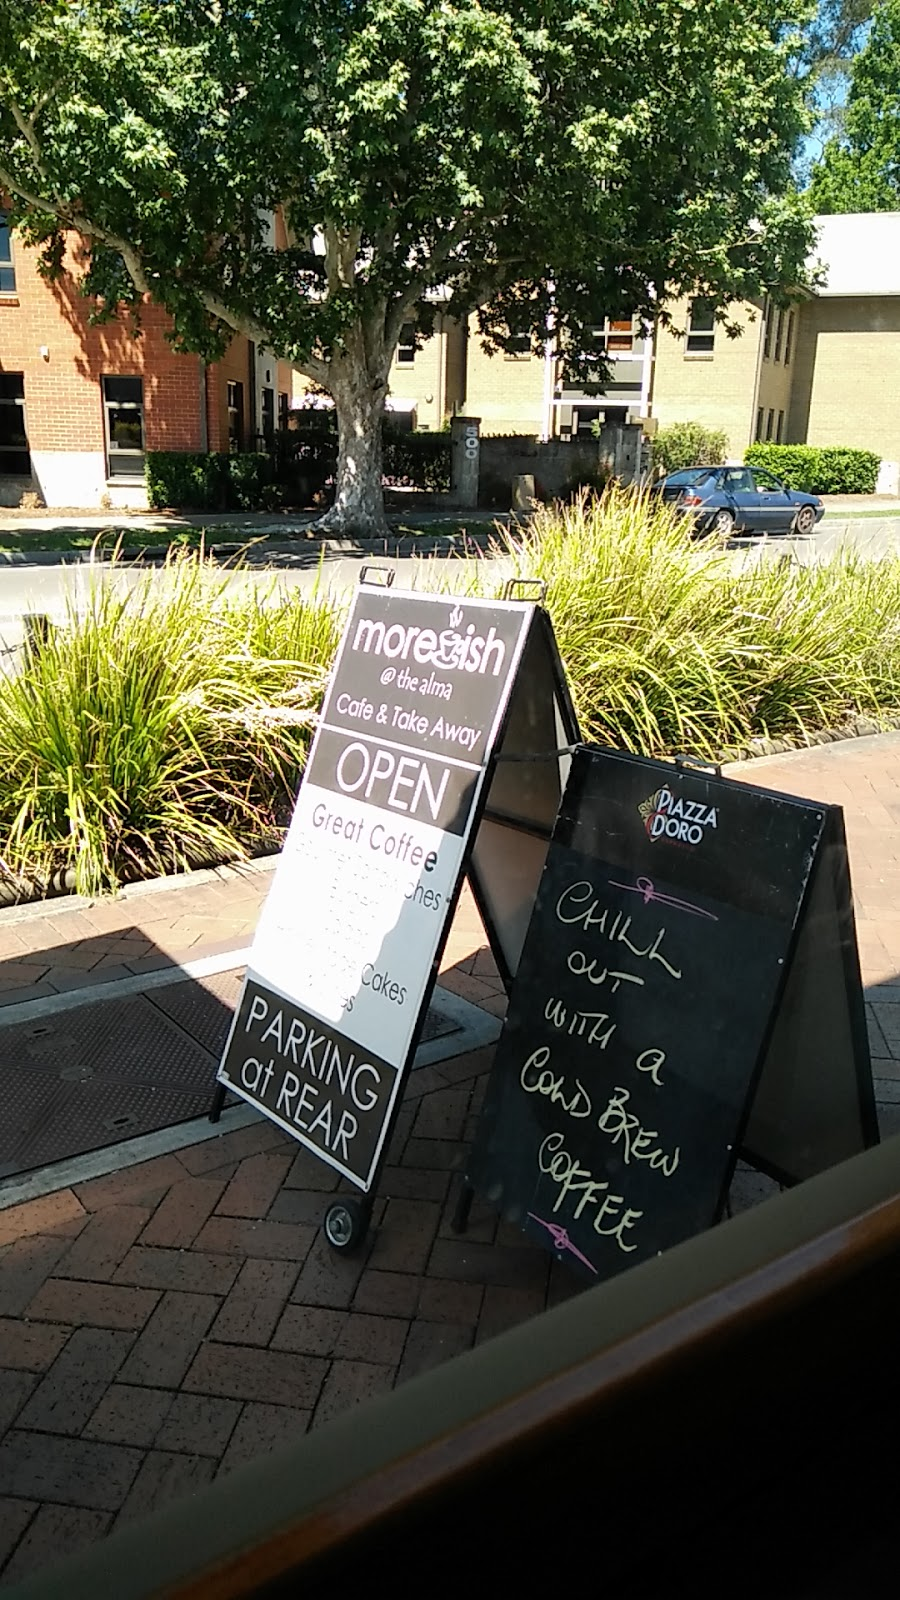 Moreish Cafe | cafe | 541 High St, Maitland NSW 2320, Australia | 0249342288 OR +61 2 4934 2288